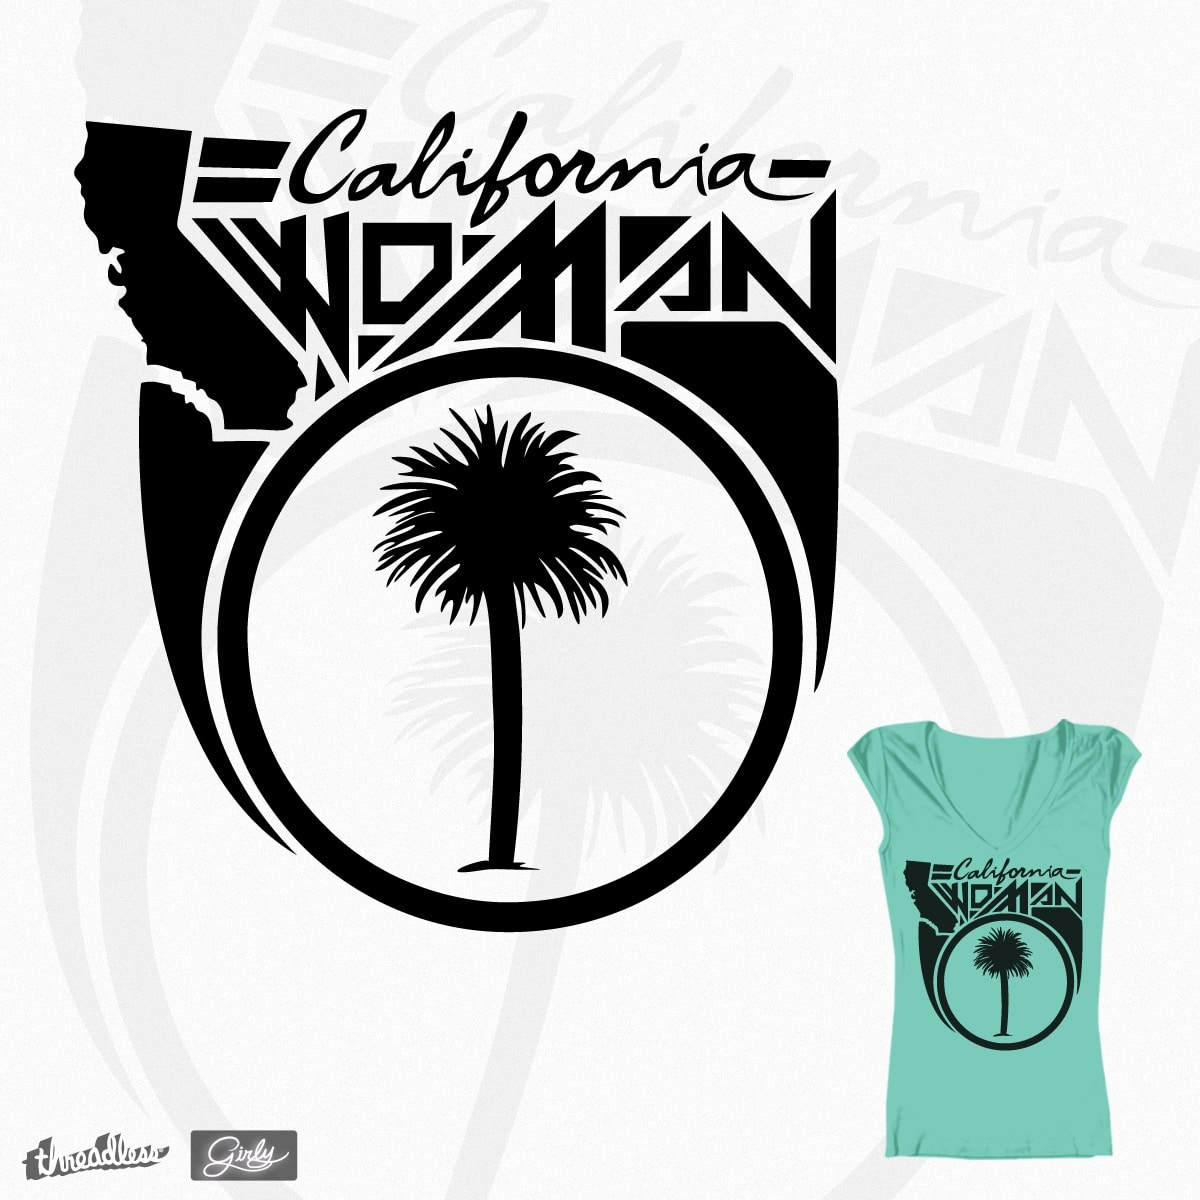 California Woman by anycal_republic on Threadless